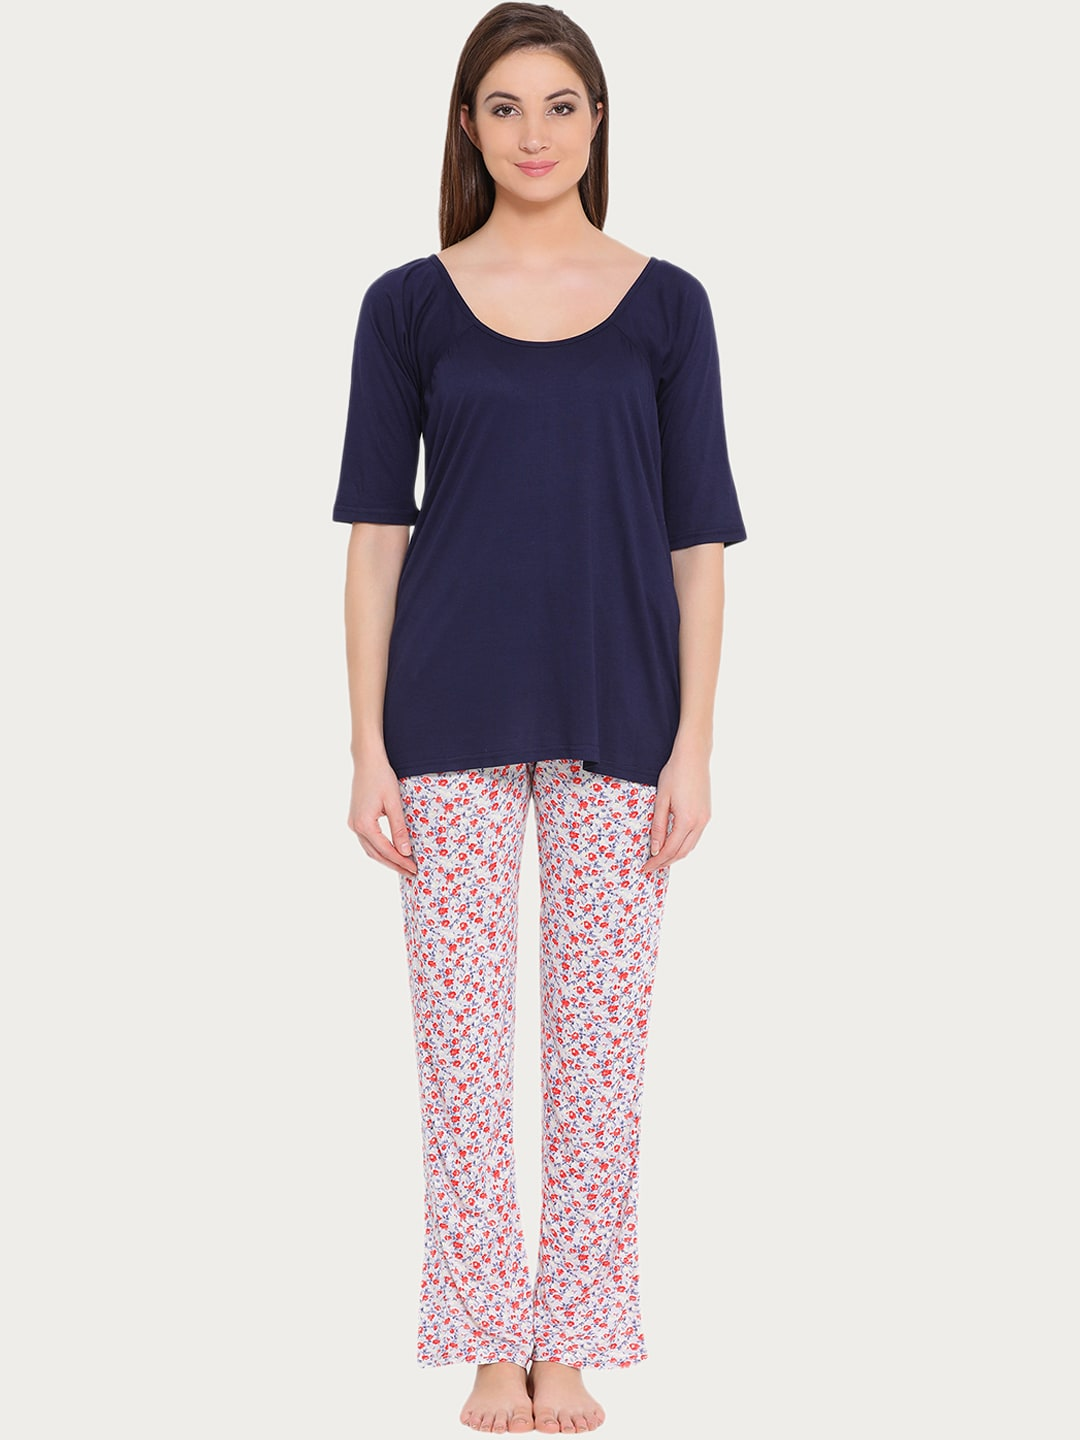 Clovia Printed Loungewear And Nightwear - Buy Clovia Printed Loungewear And  Nightwear online in India dfa9acd29